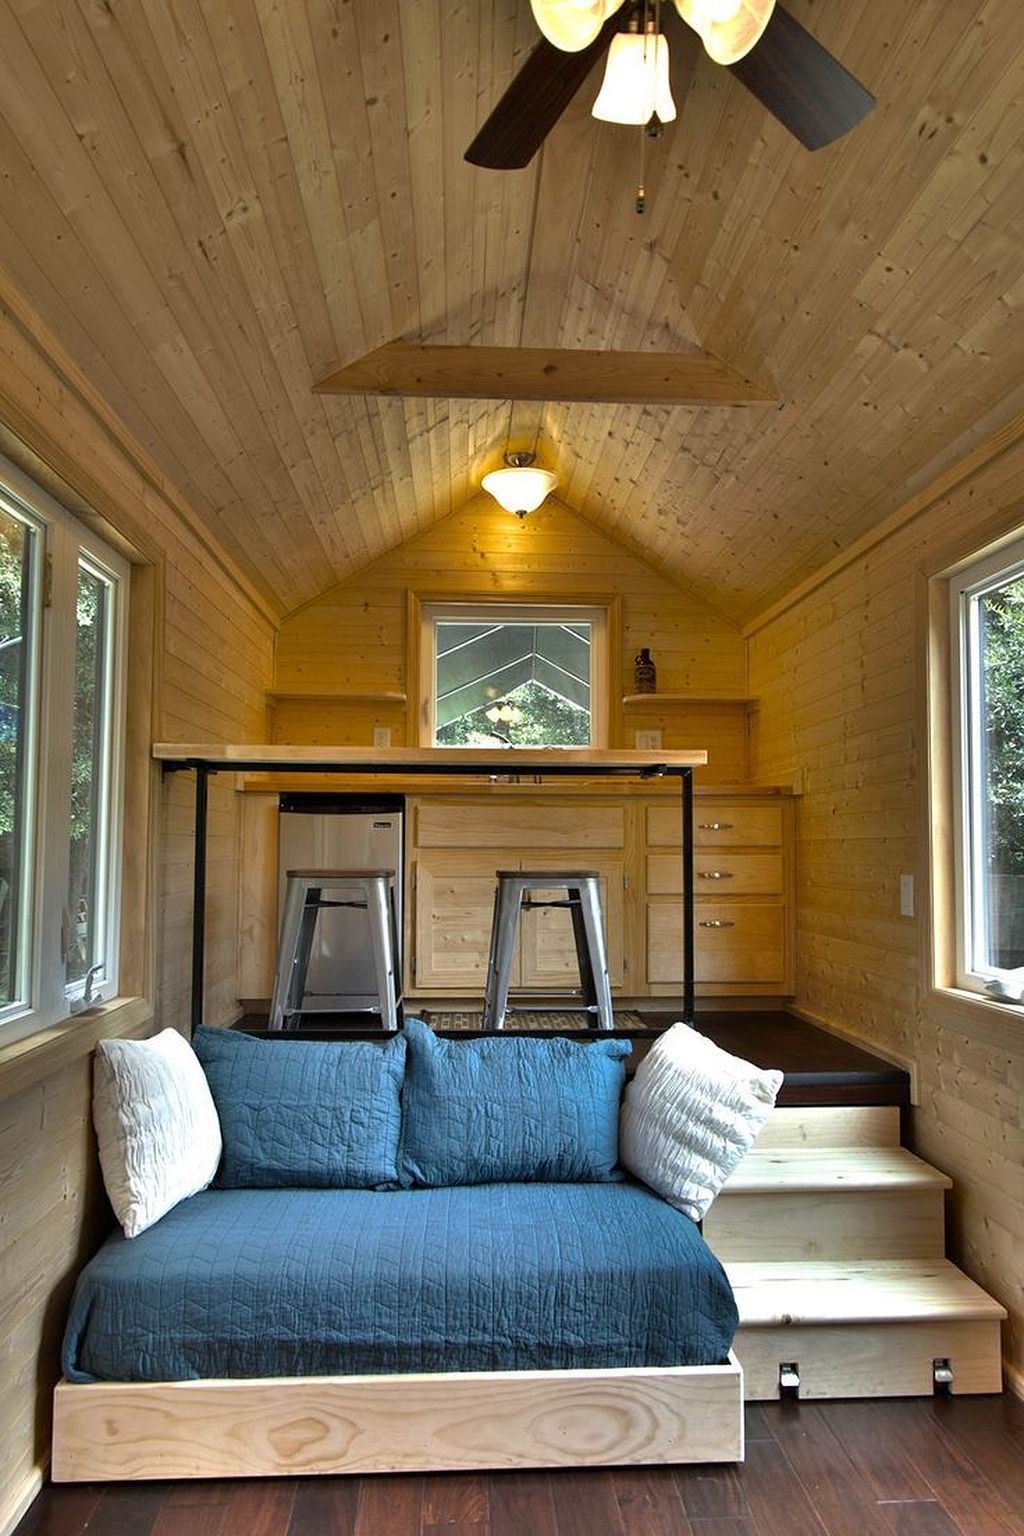 Fabulous Tiny Houses Design That Maximize Style And Function 32